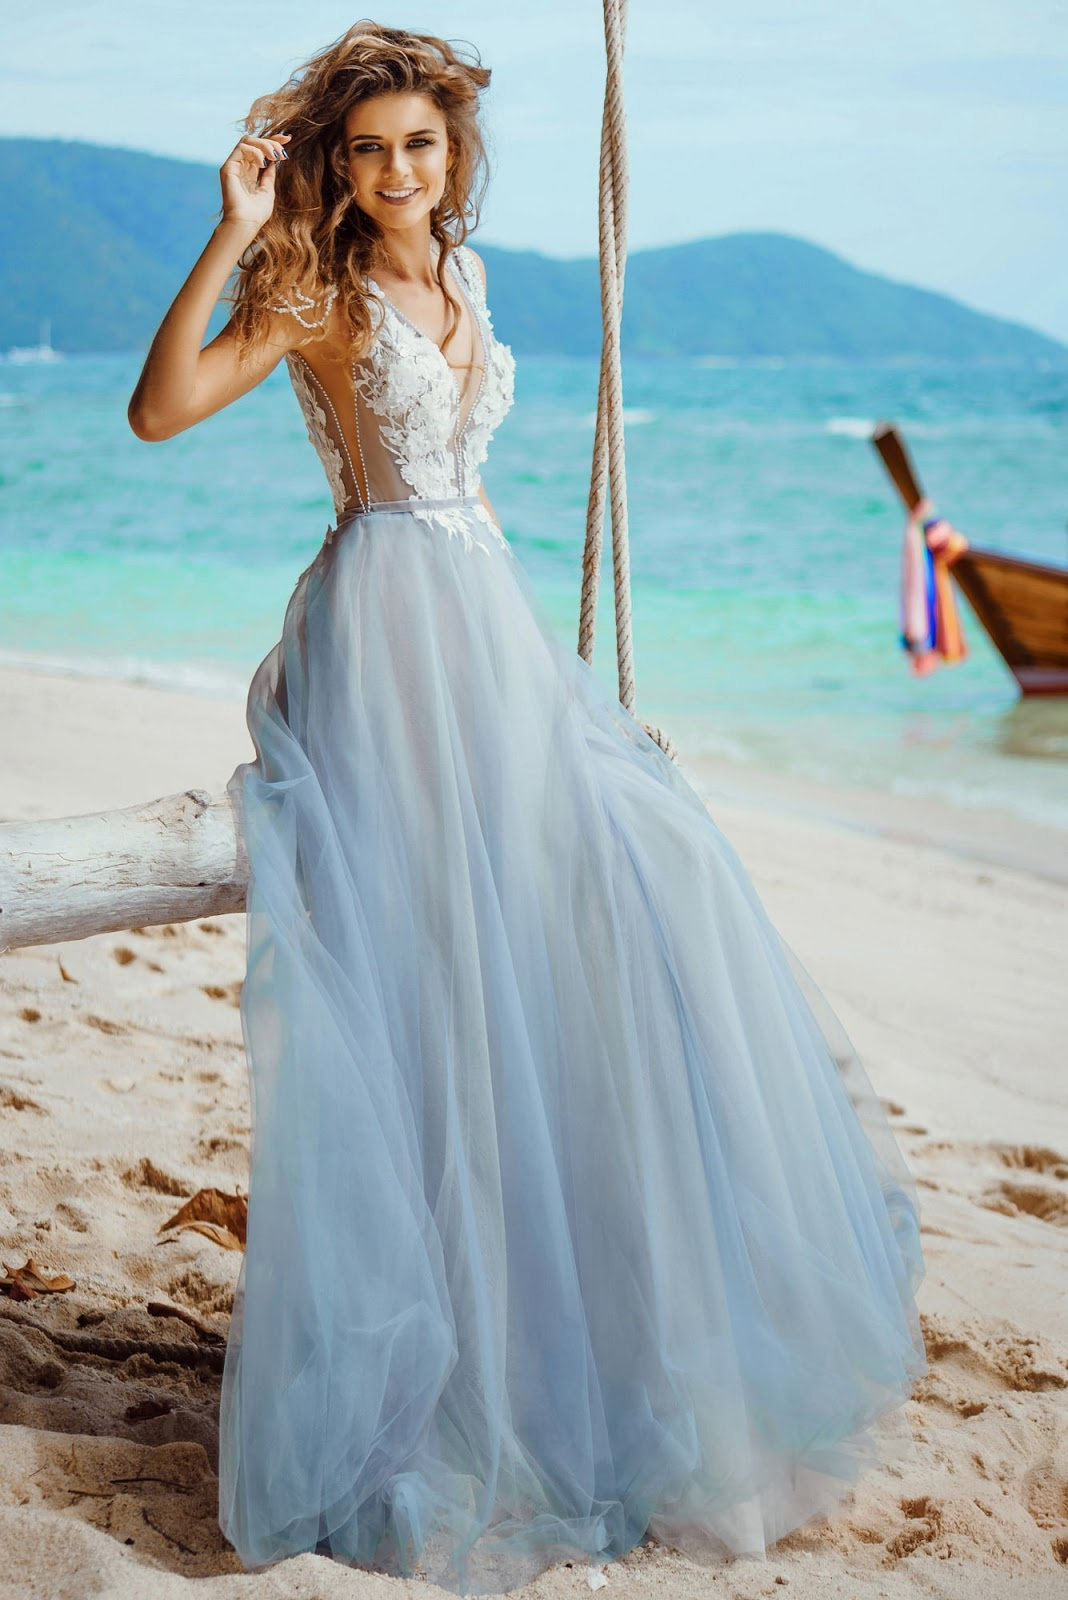 bb4b3ce5d44e Bohemian madness sheer Ivory lace top sky blue tulle wedding bridal ball  Gowns floor length maxi backless open back sheer through for your sexy  hottest look ...